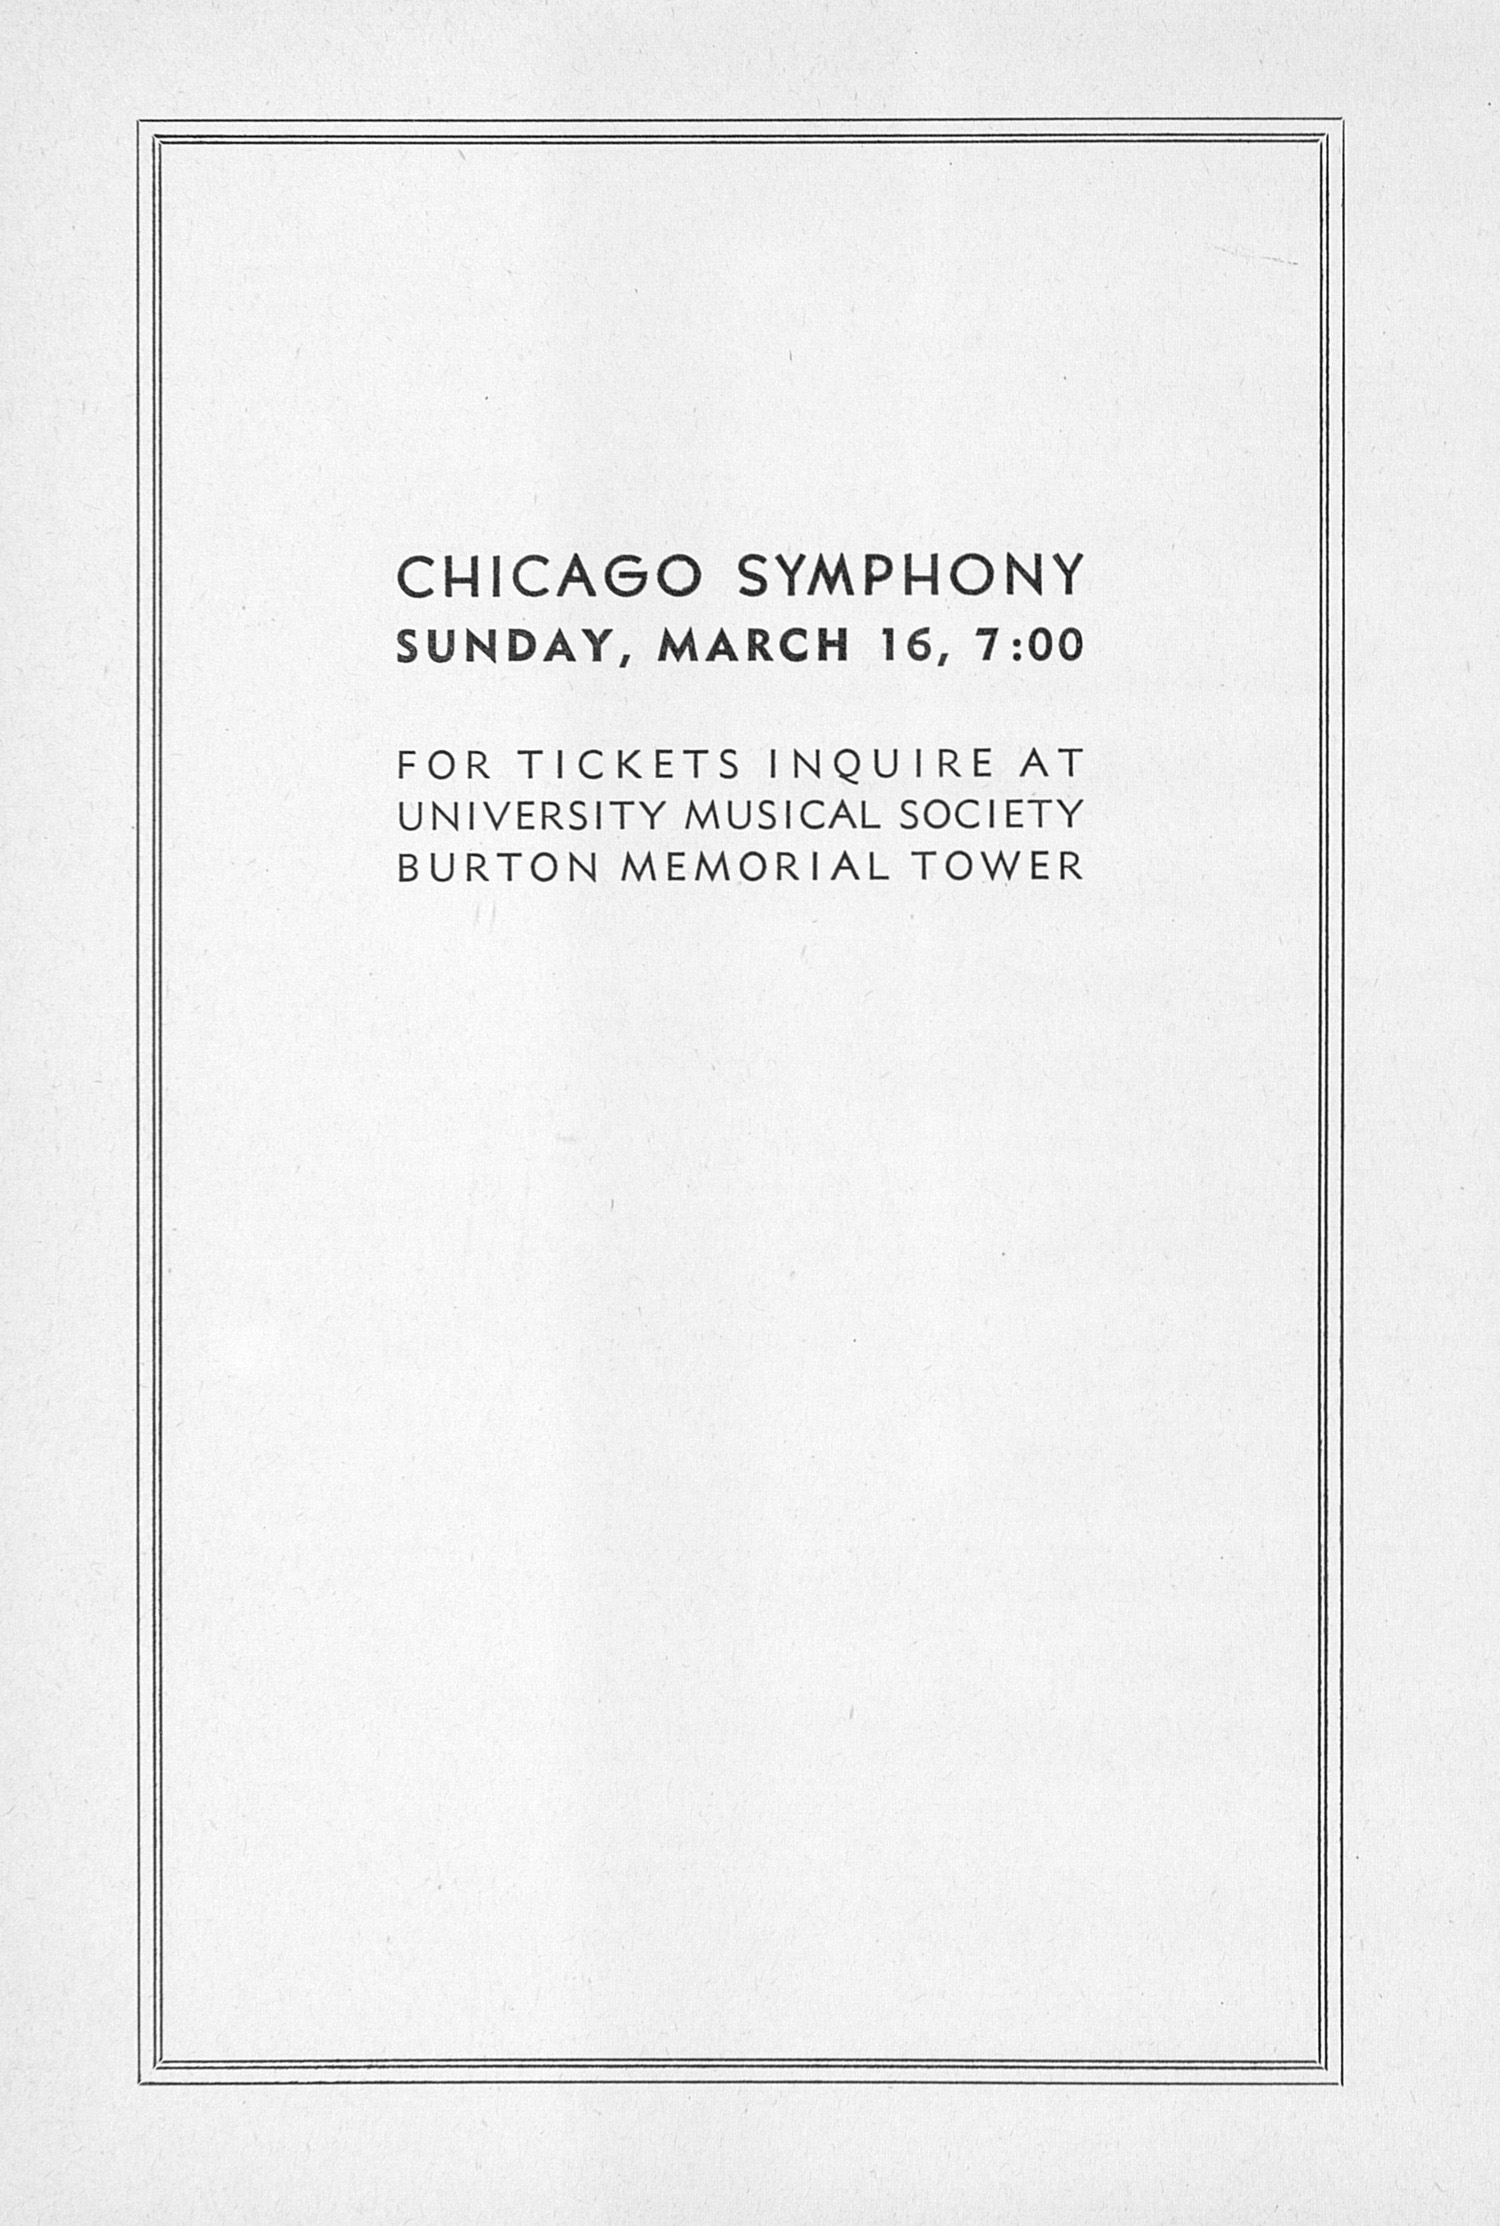 UMS Concert Program, February 26, 1947: Sixty-eighth Annual Choral Union Concert Series -- Lotte Lehmann image